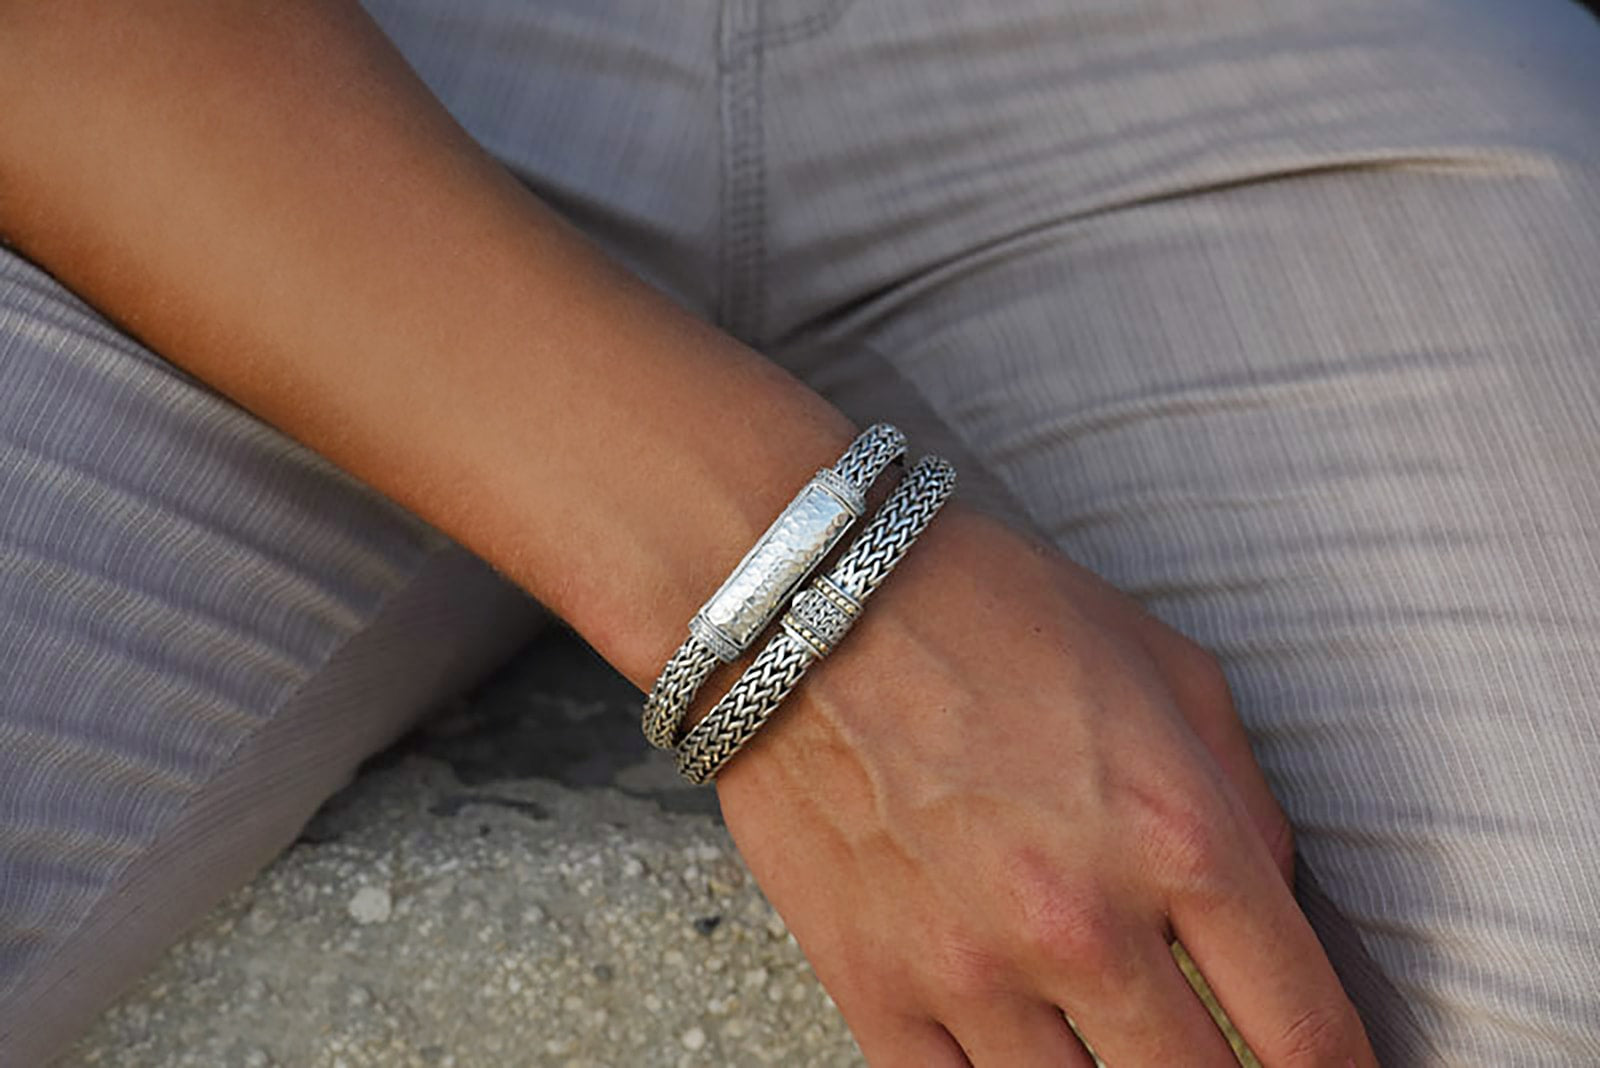 Model wearing Hammered silver Bali Bracelet and woven snake weave bracelet